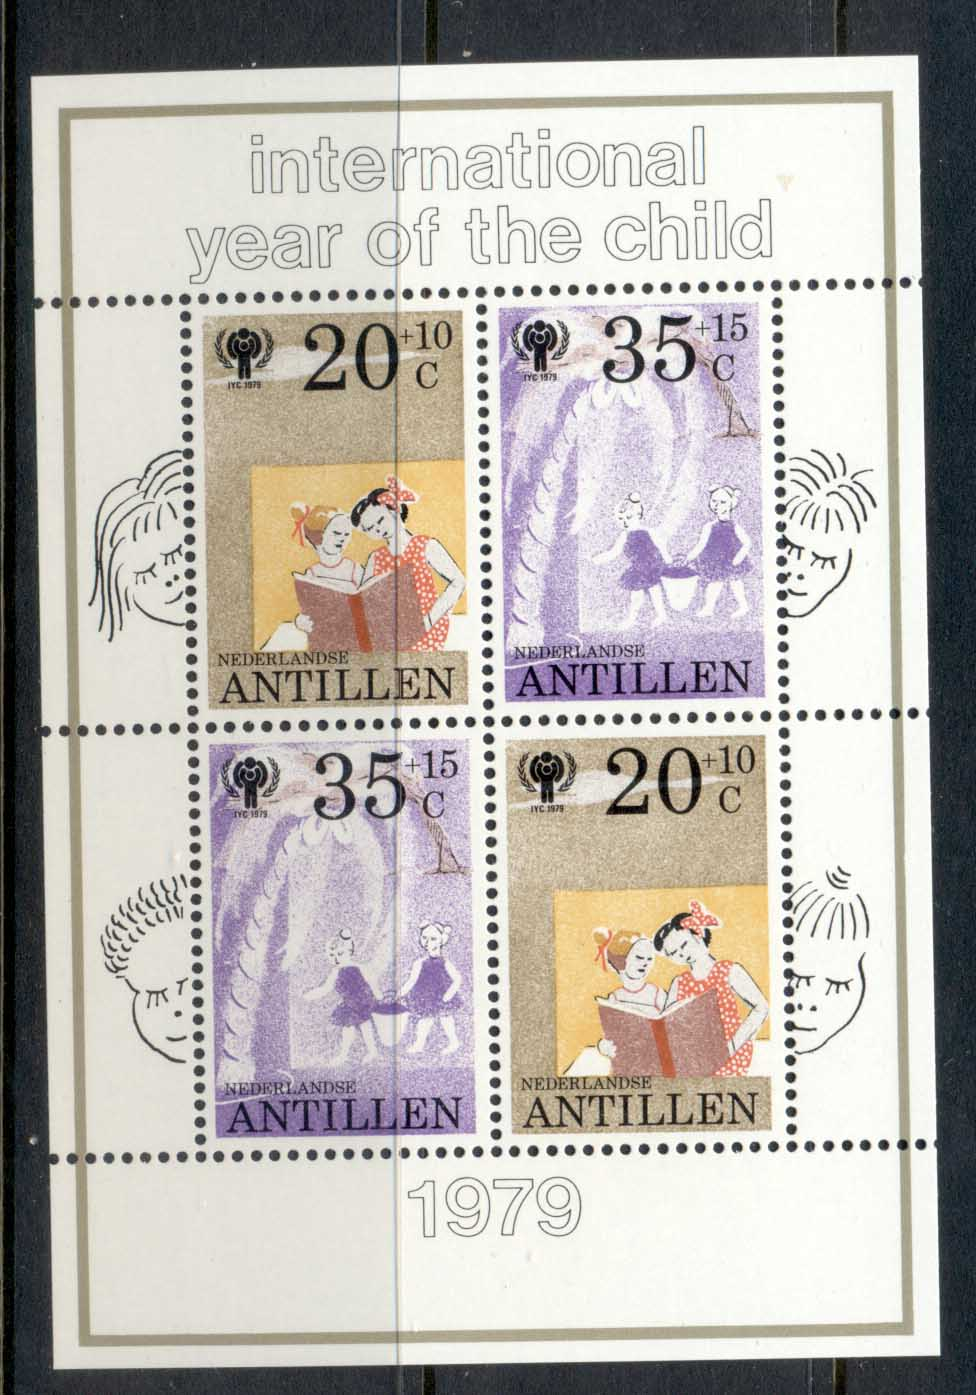 Netherlands Antilles 1979 IYC International year of the Child MS MUH